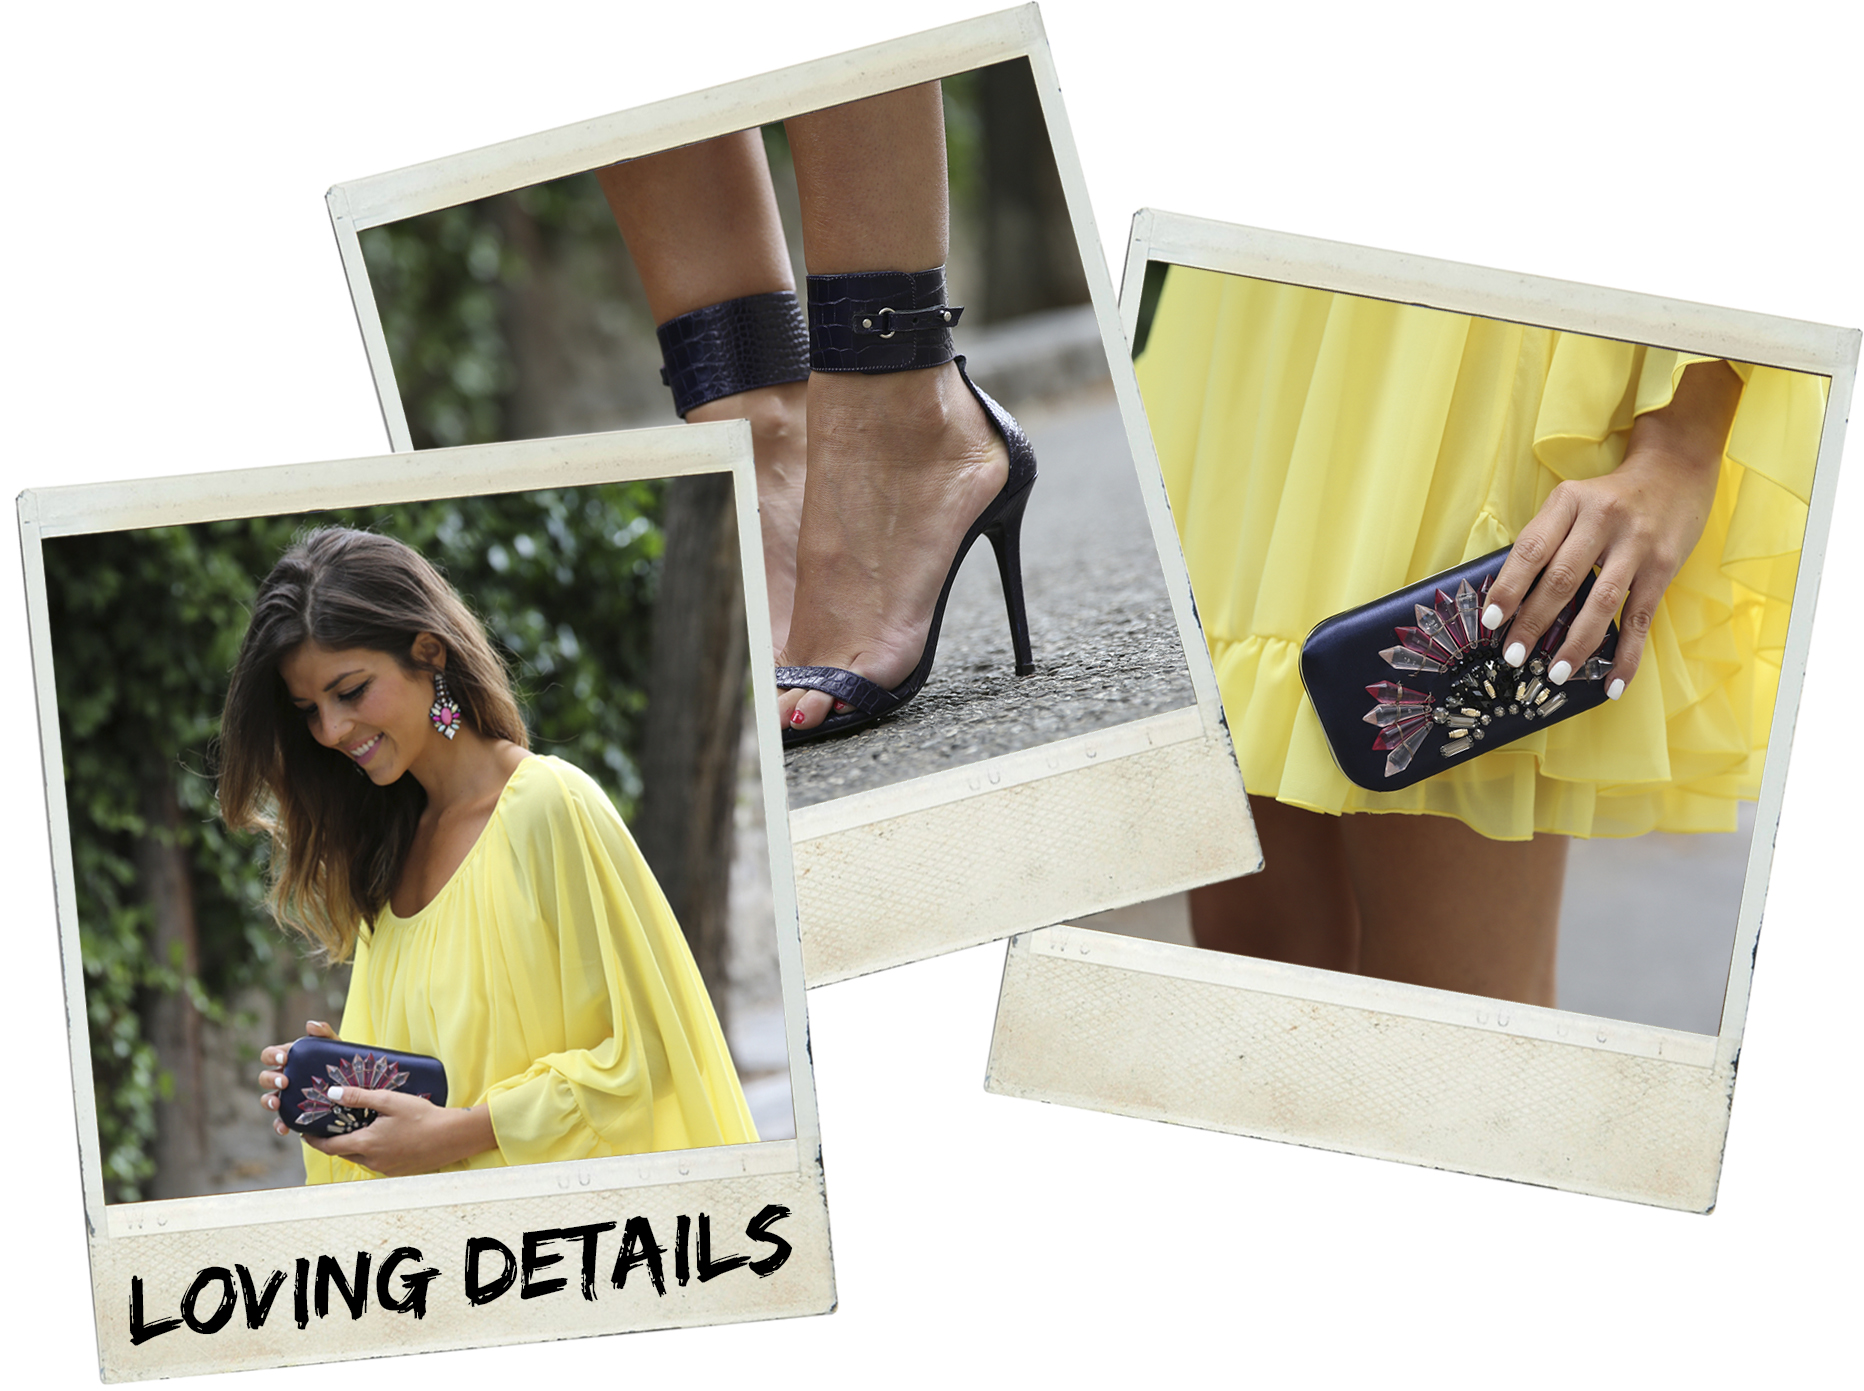 trendy_taste-look-outfit-street_style-ootd-blogger-blog-fashion_spain-moda_españa-yellow_dress-vestido_amarillo-boda-wedding-evento-clutch_pedreria-mas34-sandalias_azules-blue_sandals-polaroid